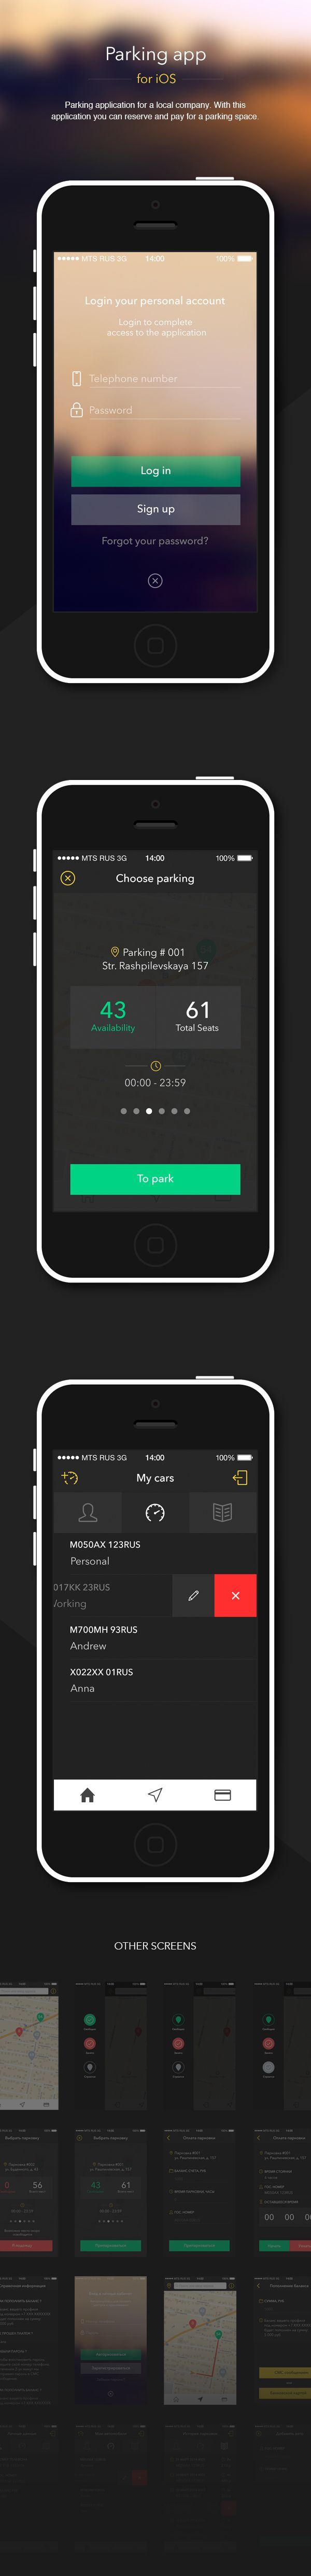 Parking app iOS by Maxim Sorokin, via Behance